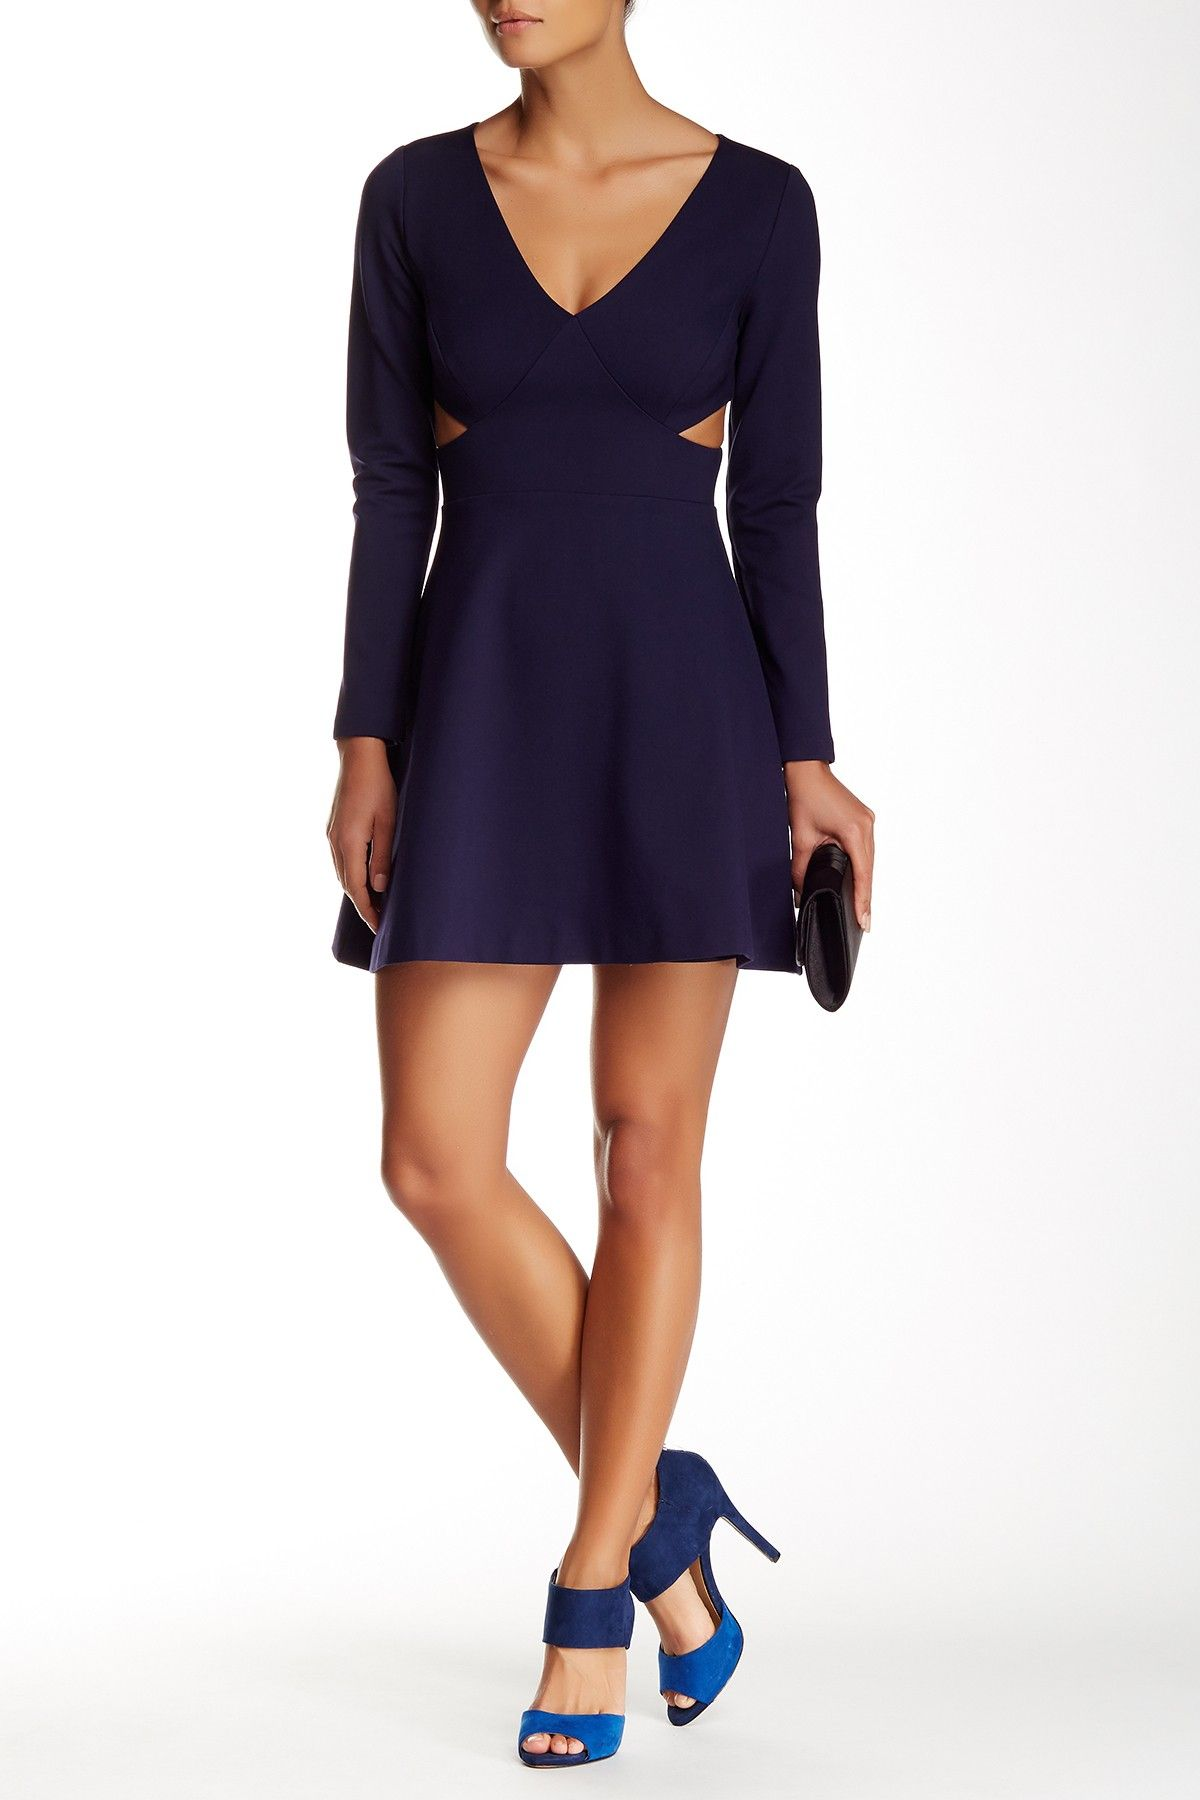 Long sleeve side cutout mini dress shops dresses and products